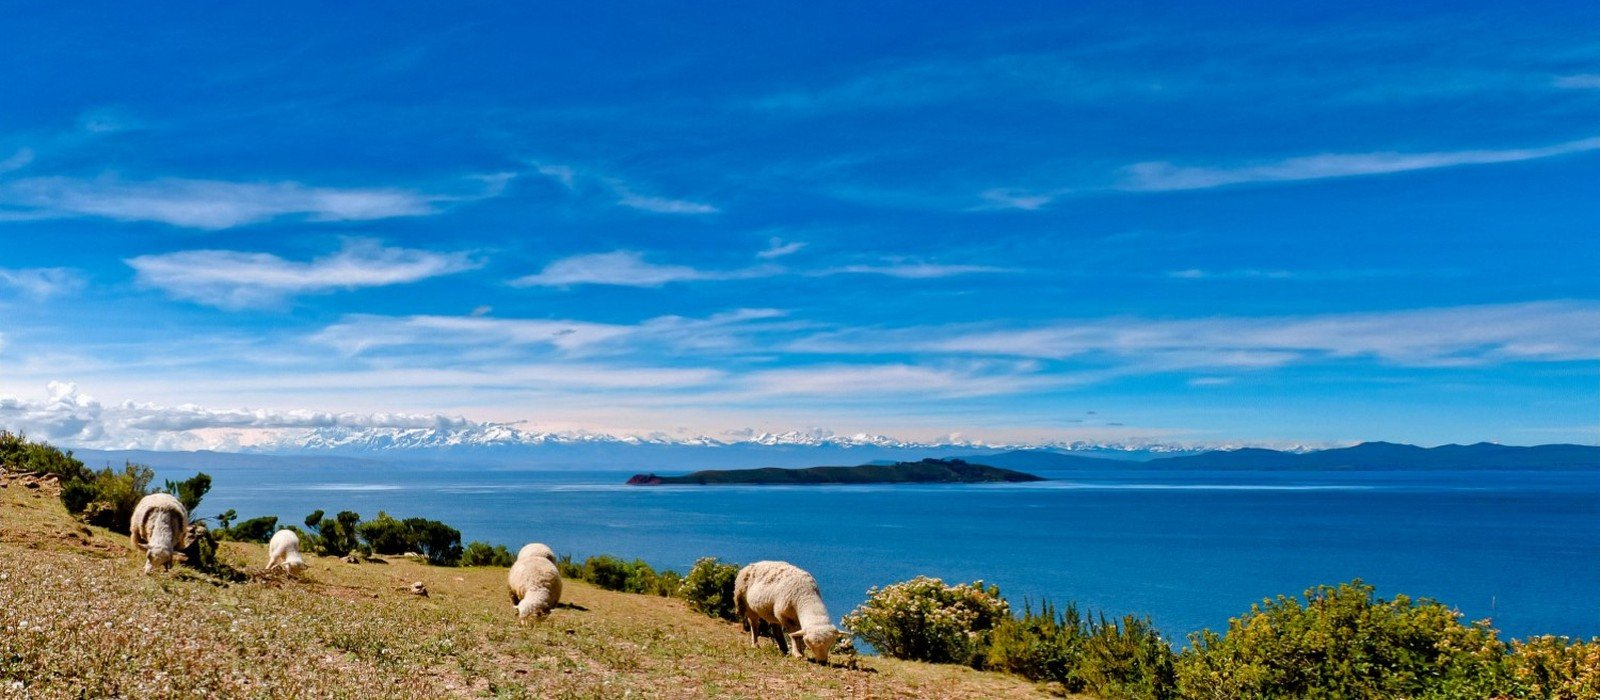 Isla del Sol and the Communities of Lake Titicaca